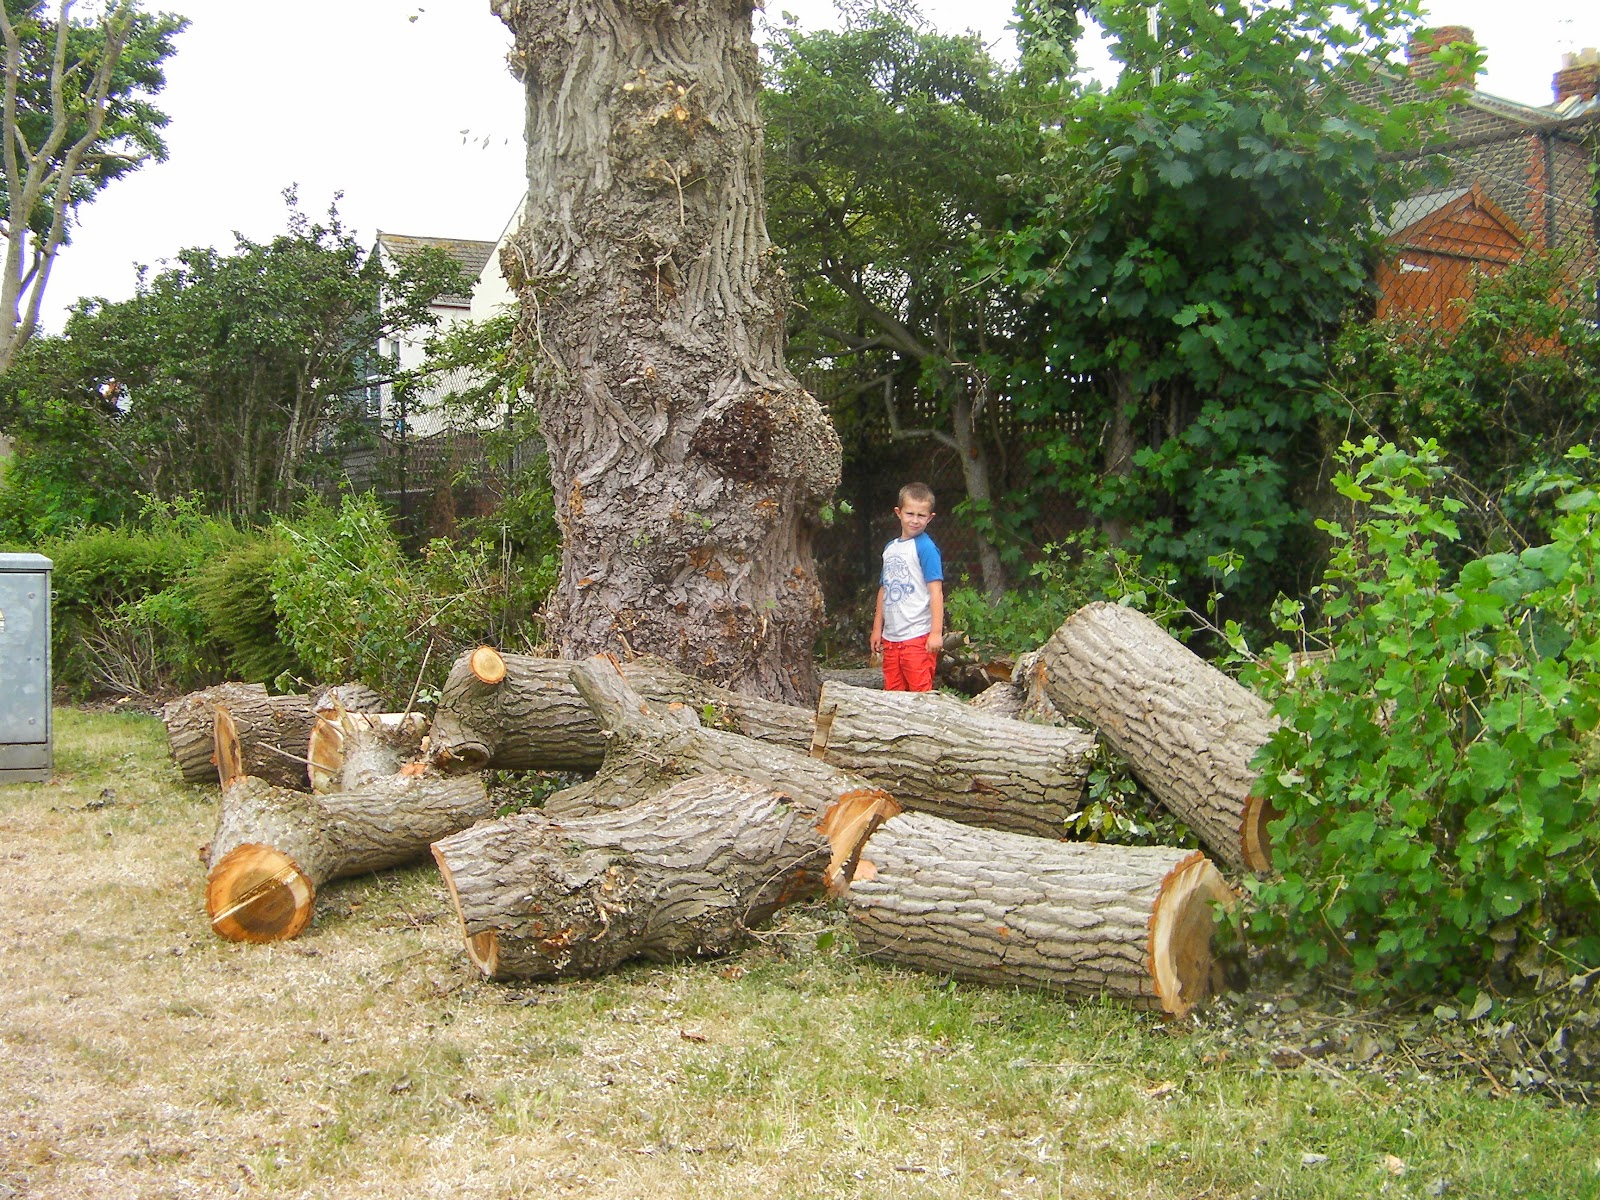 freshly cut logs at base of large tree storm damage bransbury park portsmouth